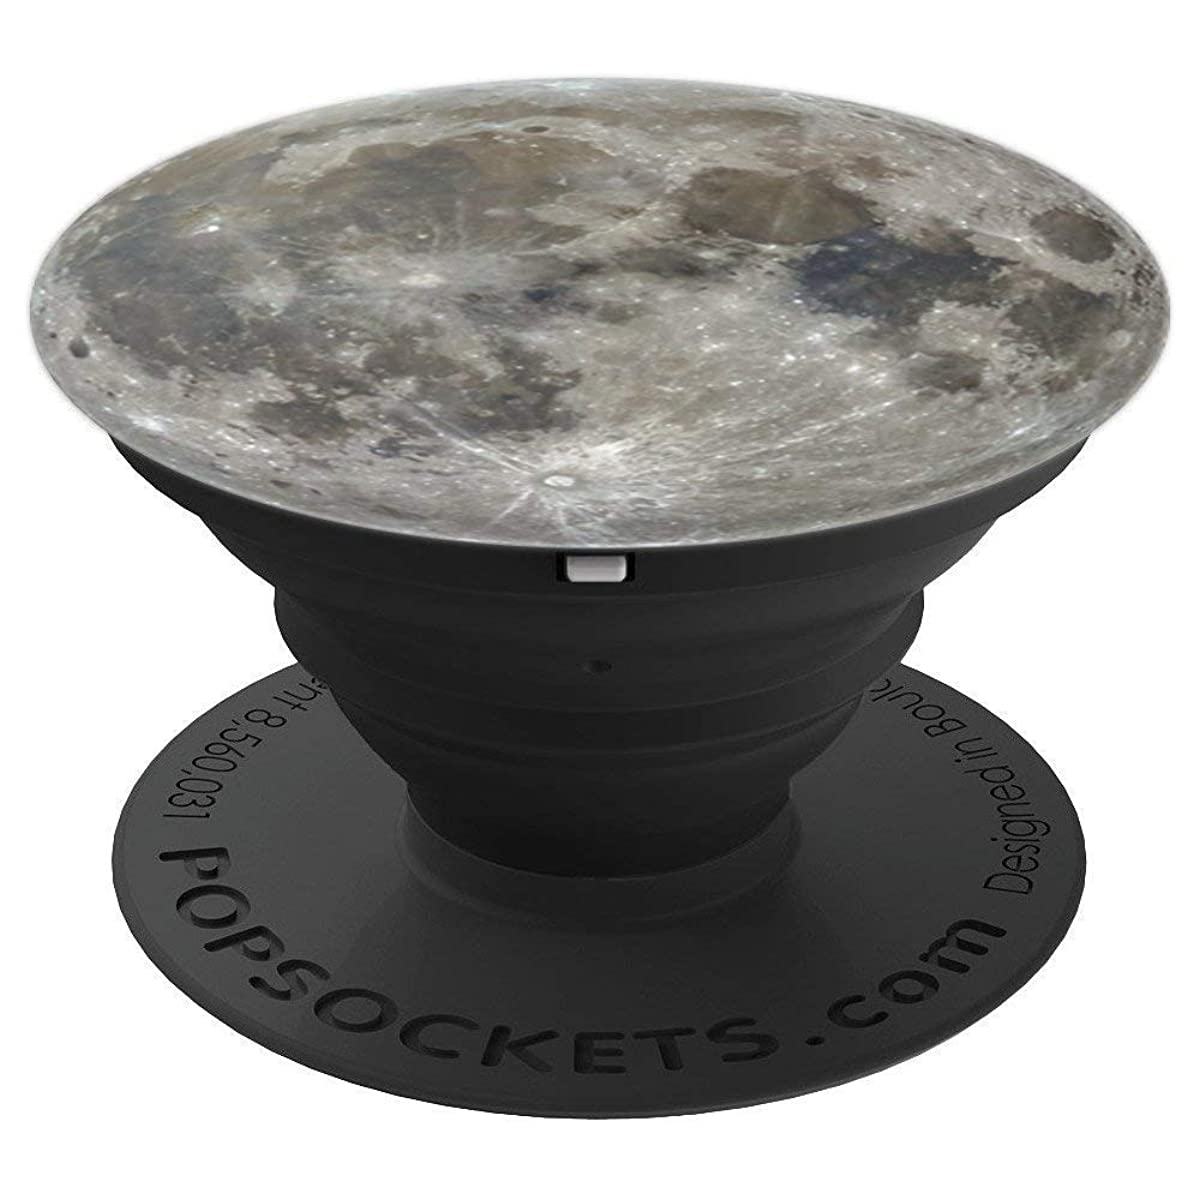 Full Moon Landing Anniversary Outer Space Astronomy Gift - PopSockets Grip and Stand for Phones and Tablets